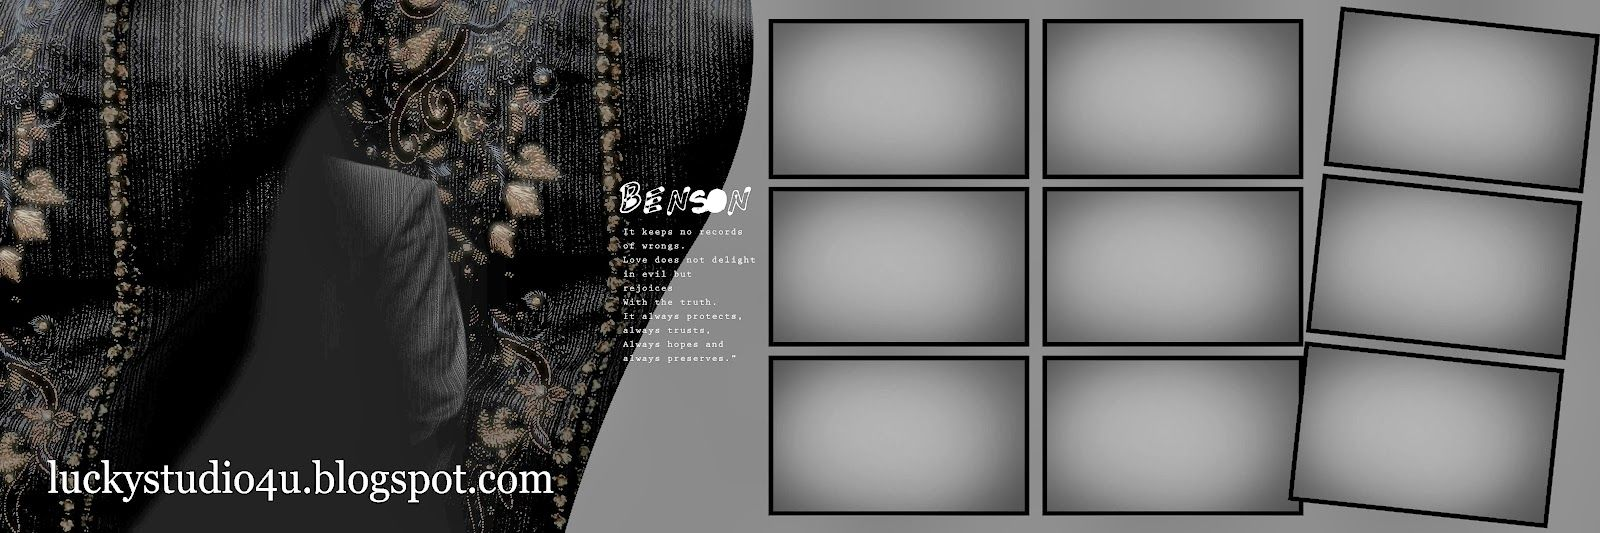 Indian Wedding Karizma Album Template Psd Files Free Download ...